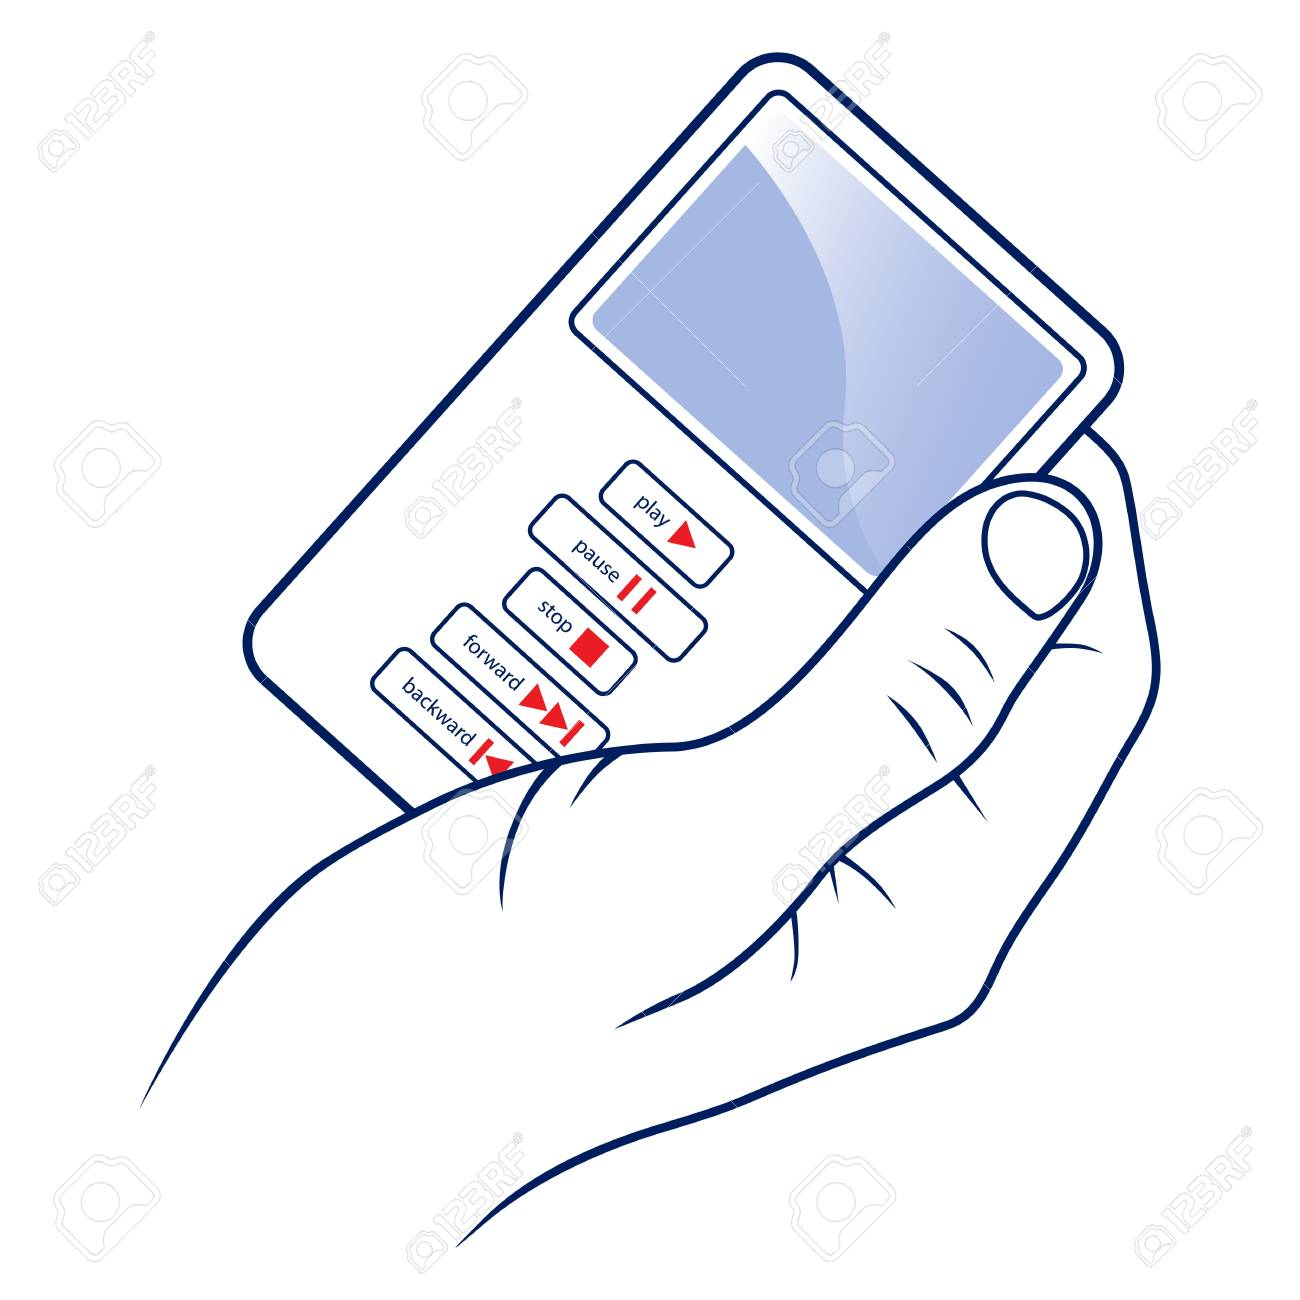 hand hold the mp3 player Stock Vector - 13439372